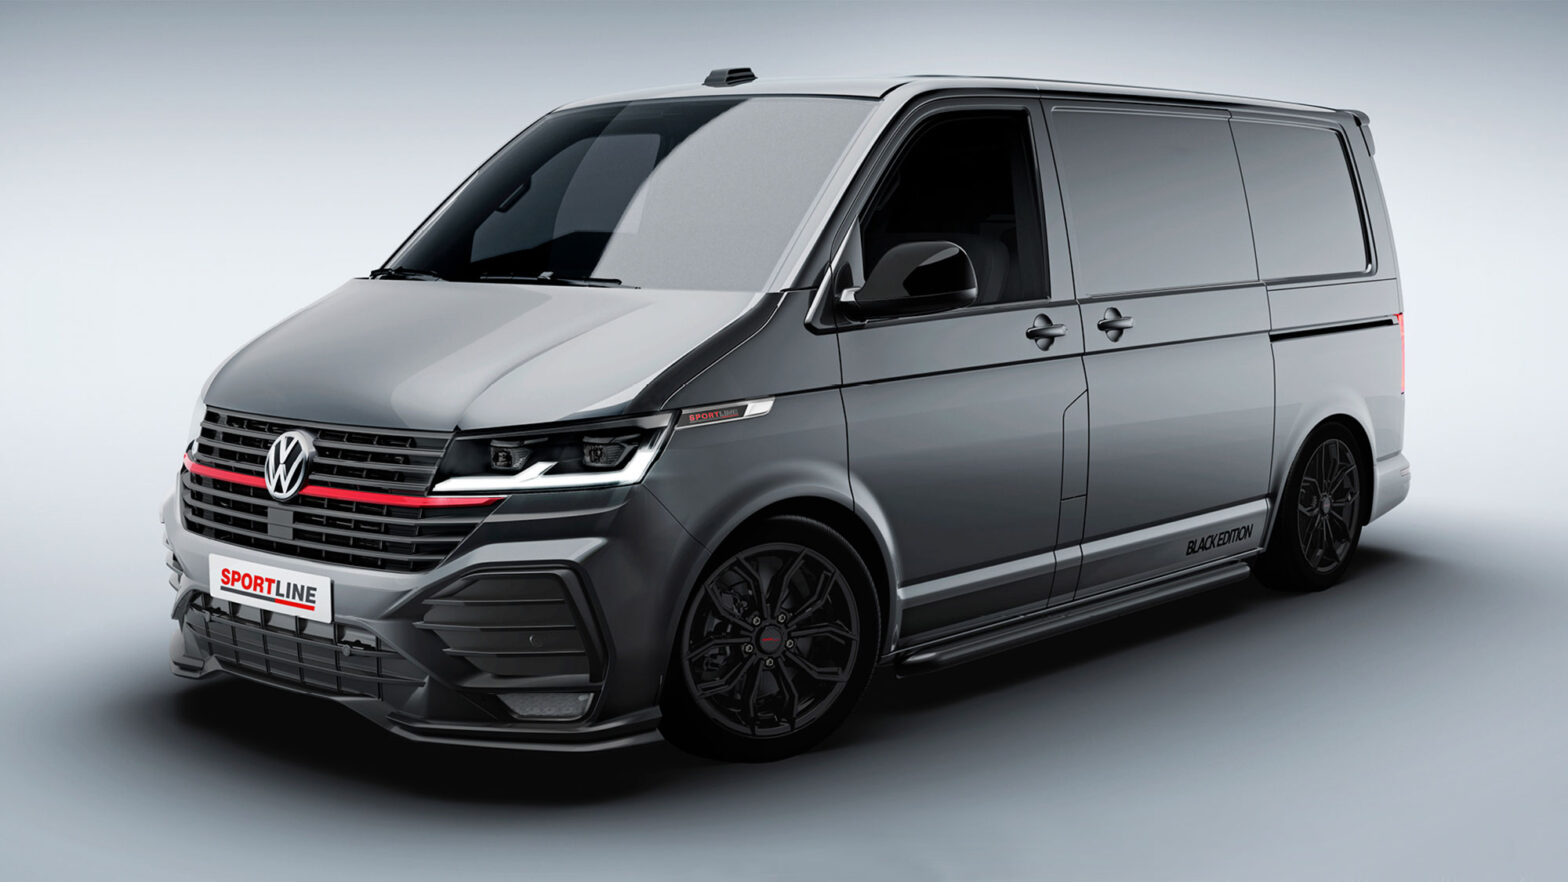 Volkswagen Transporter T6.1 Sportline Revealed